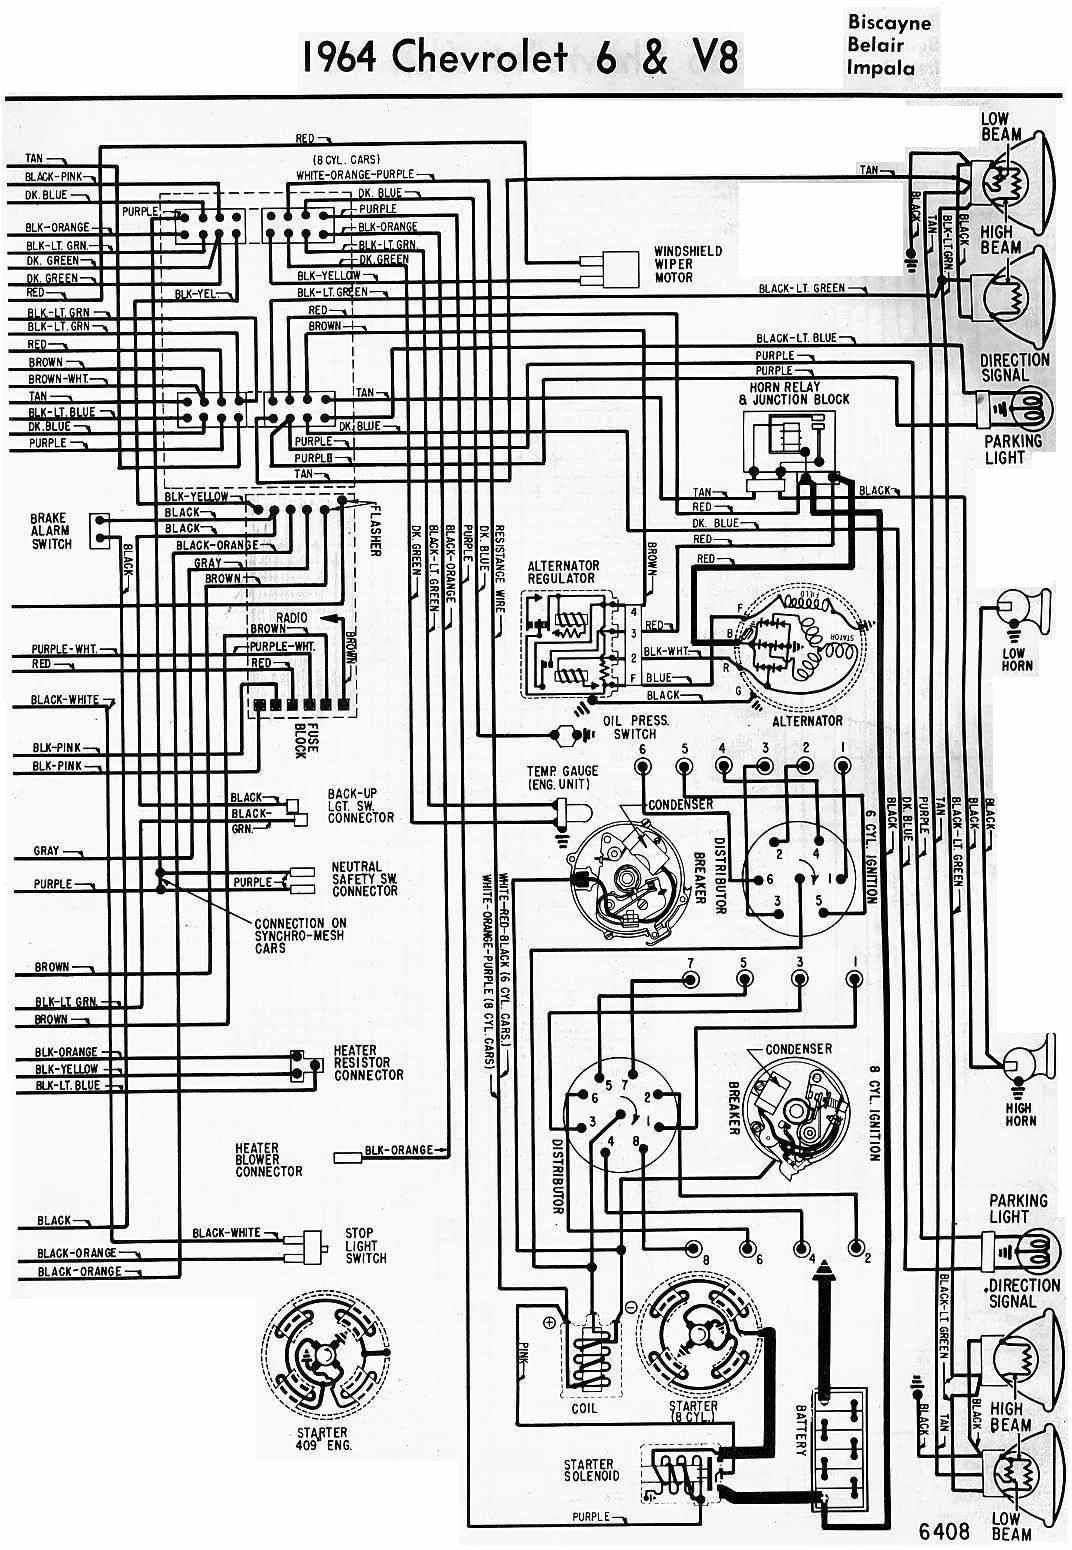 hight resolution of 64 impala wiring diagram wiring diagram todays 1964 chevy impala turn signal wiring diagram wiring schematic